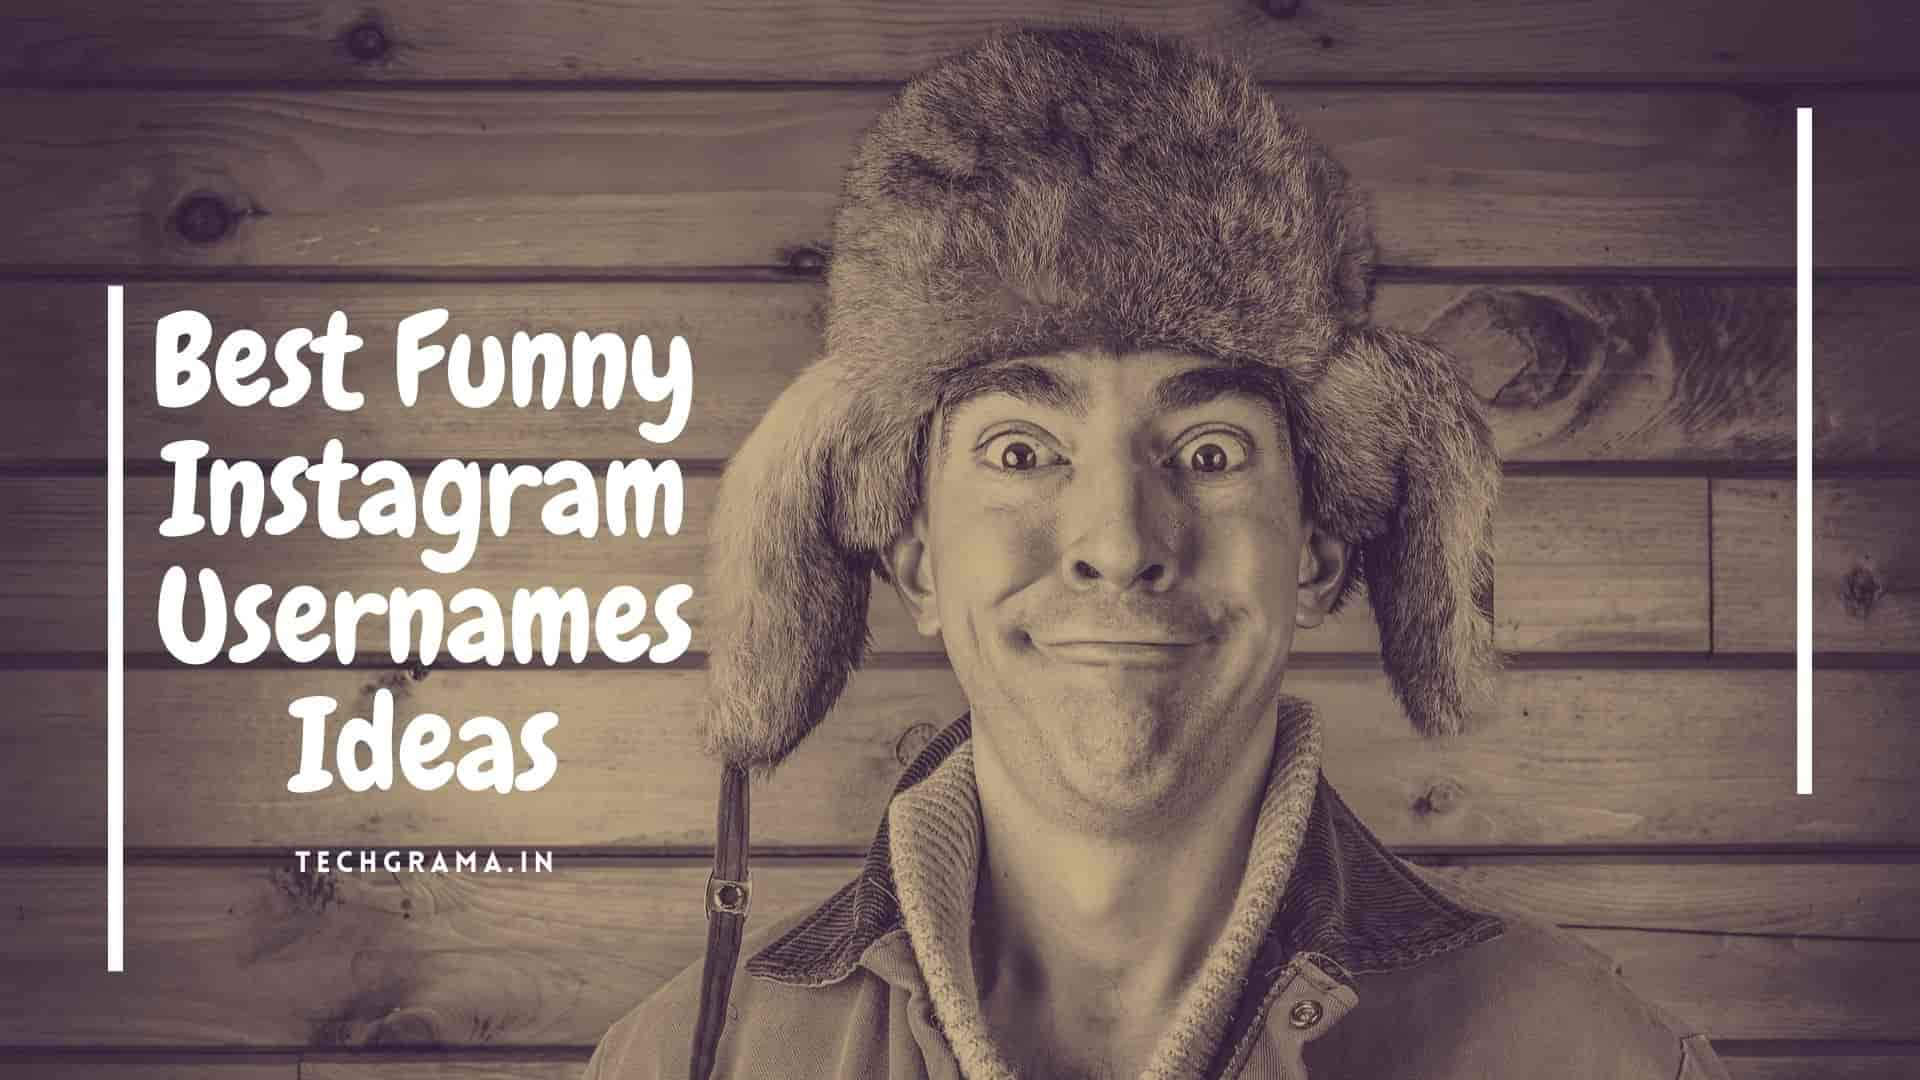 Funny Instagram Usernames,funny instagram names, funny Username ideas for Instagram, funny names list